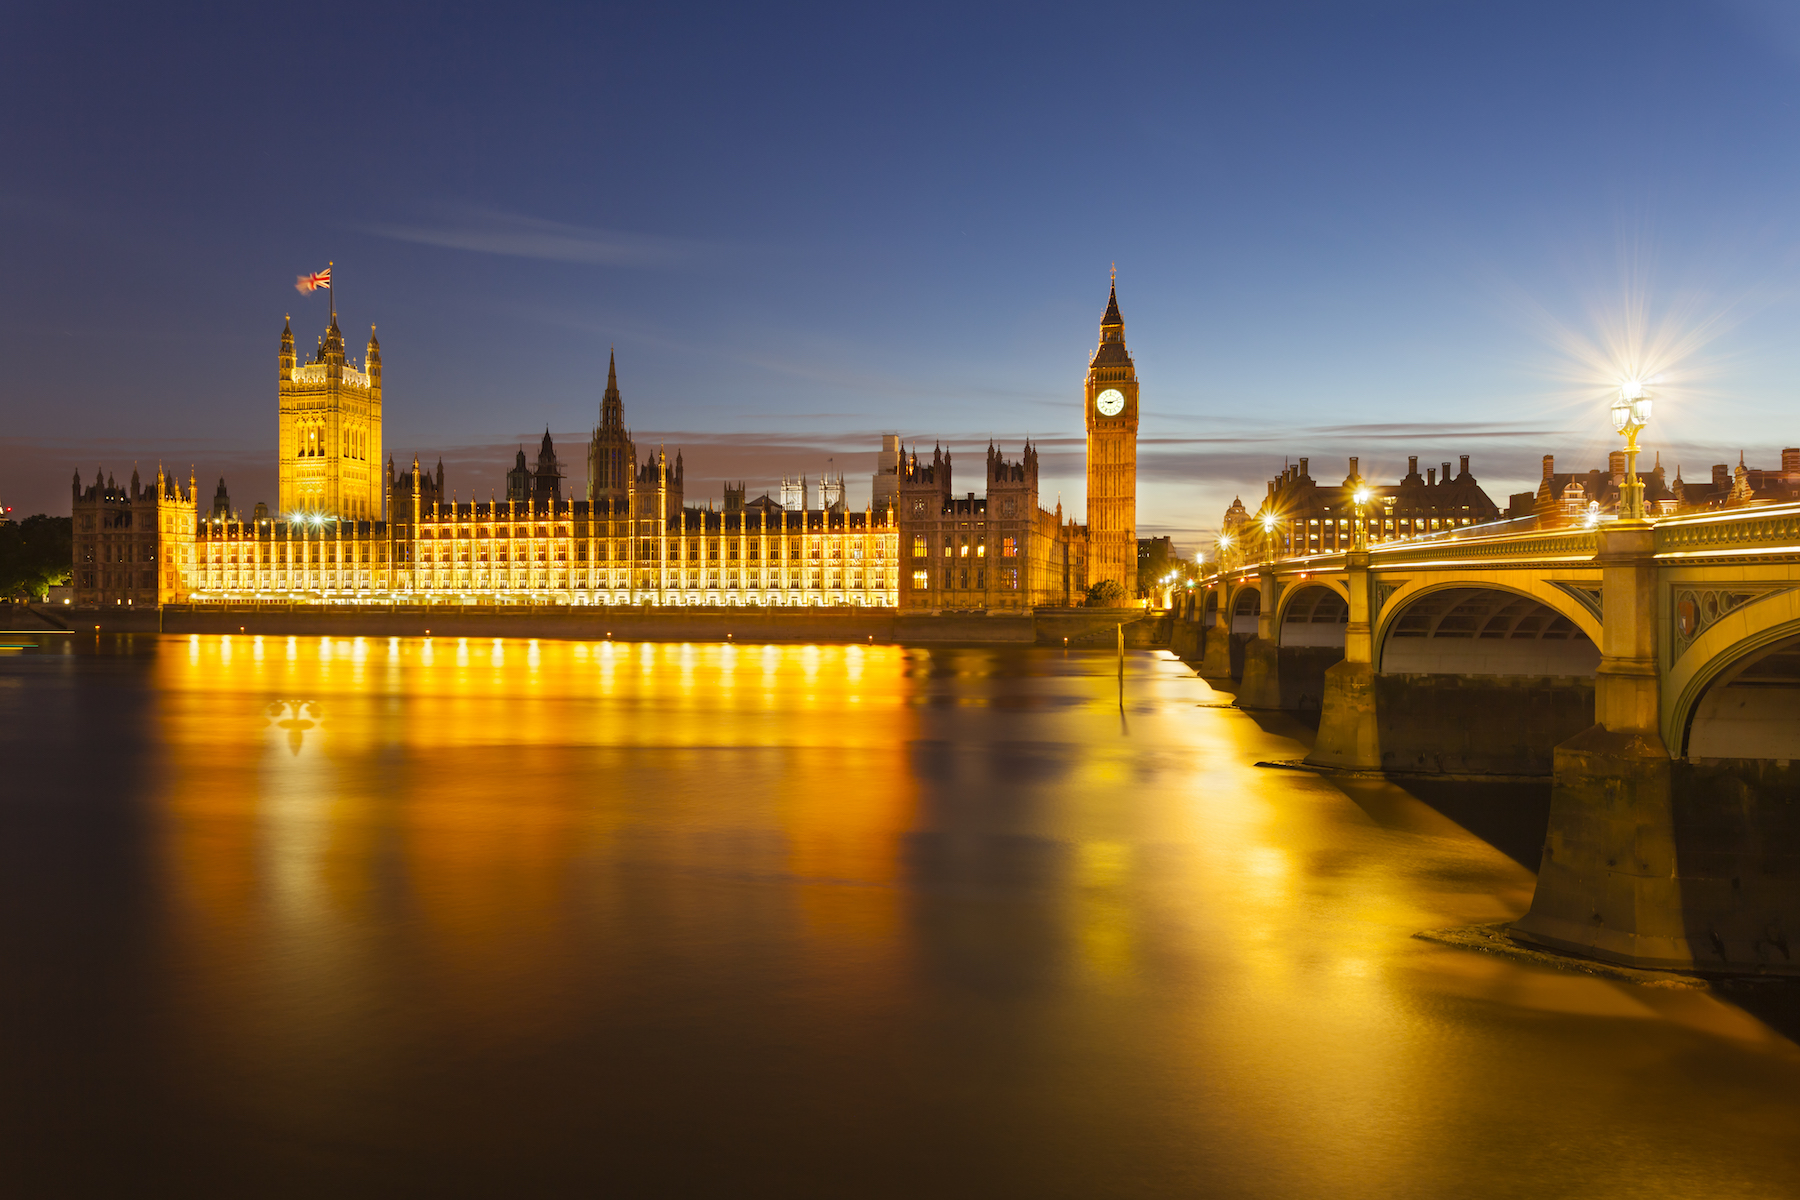 Houses-of-parliament-at-night-pjtxaxl